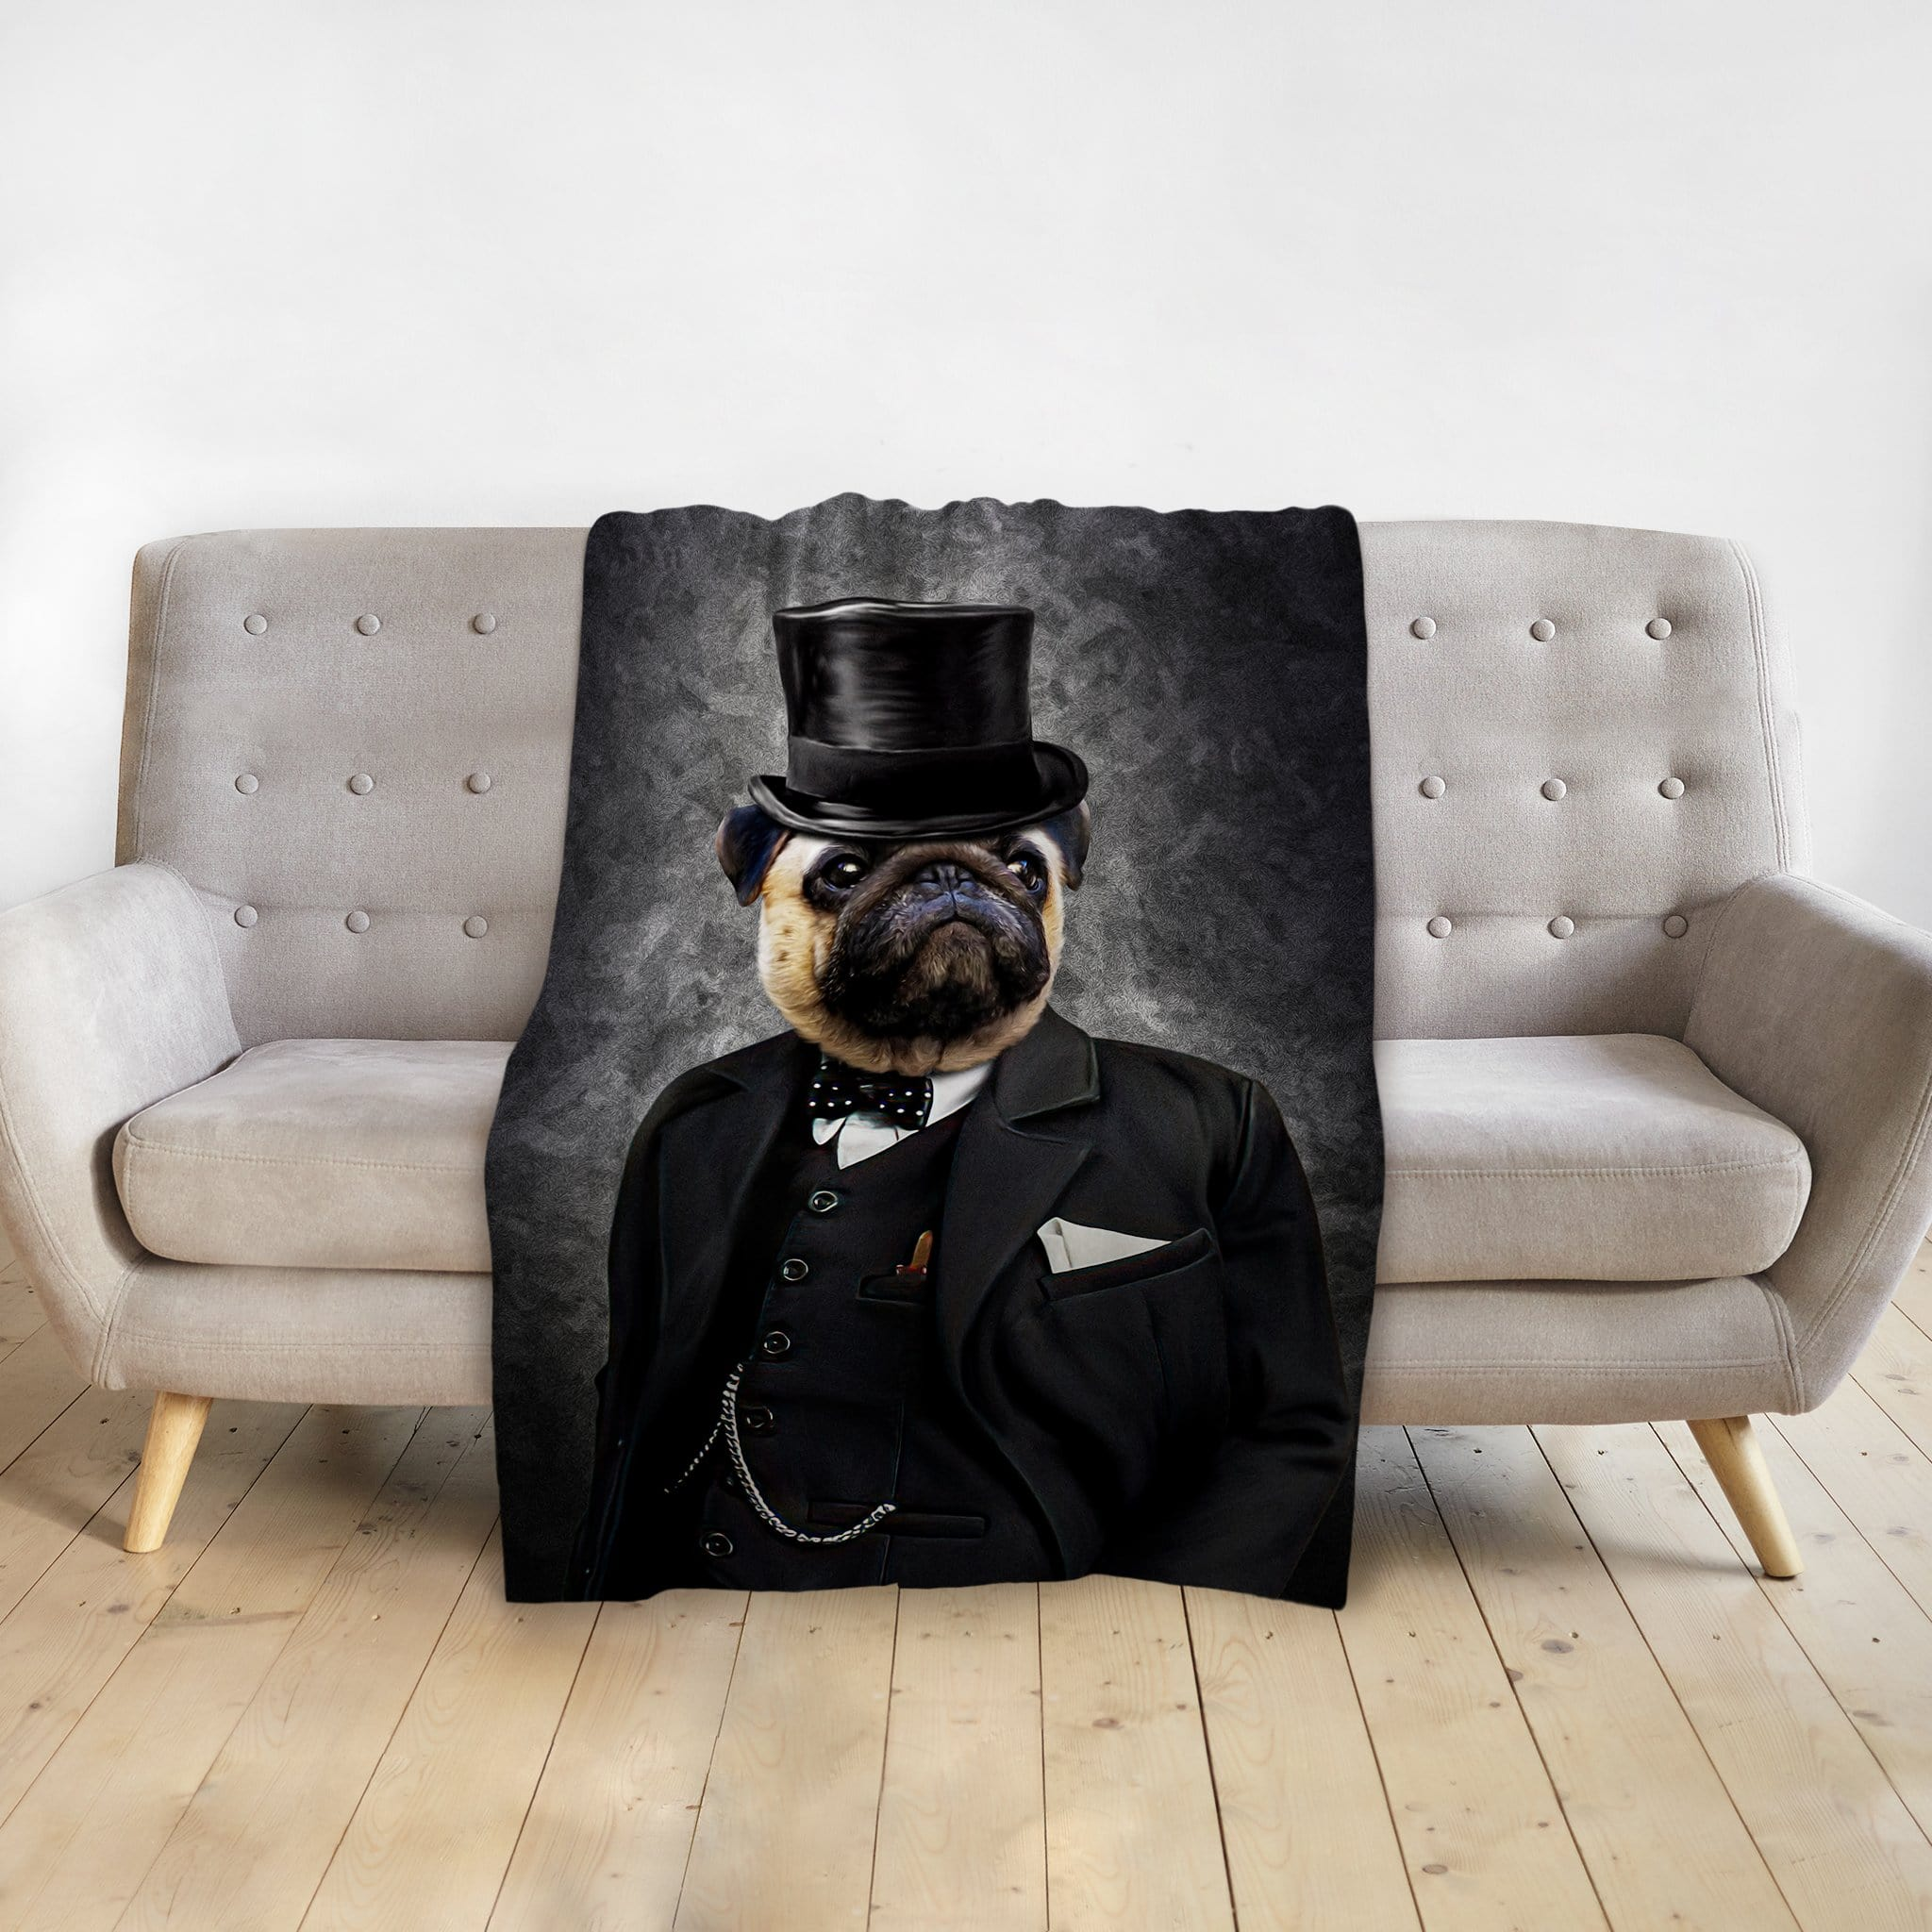 'The Winston' Personalized Pet Blanket